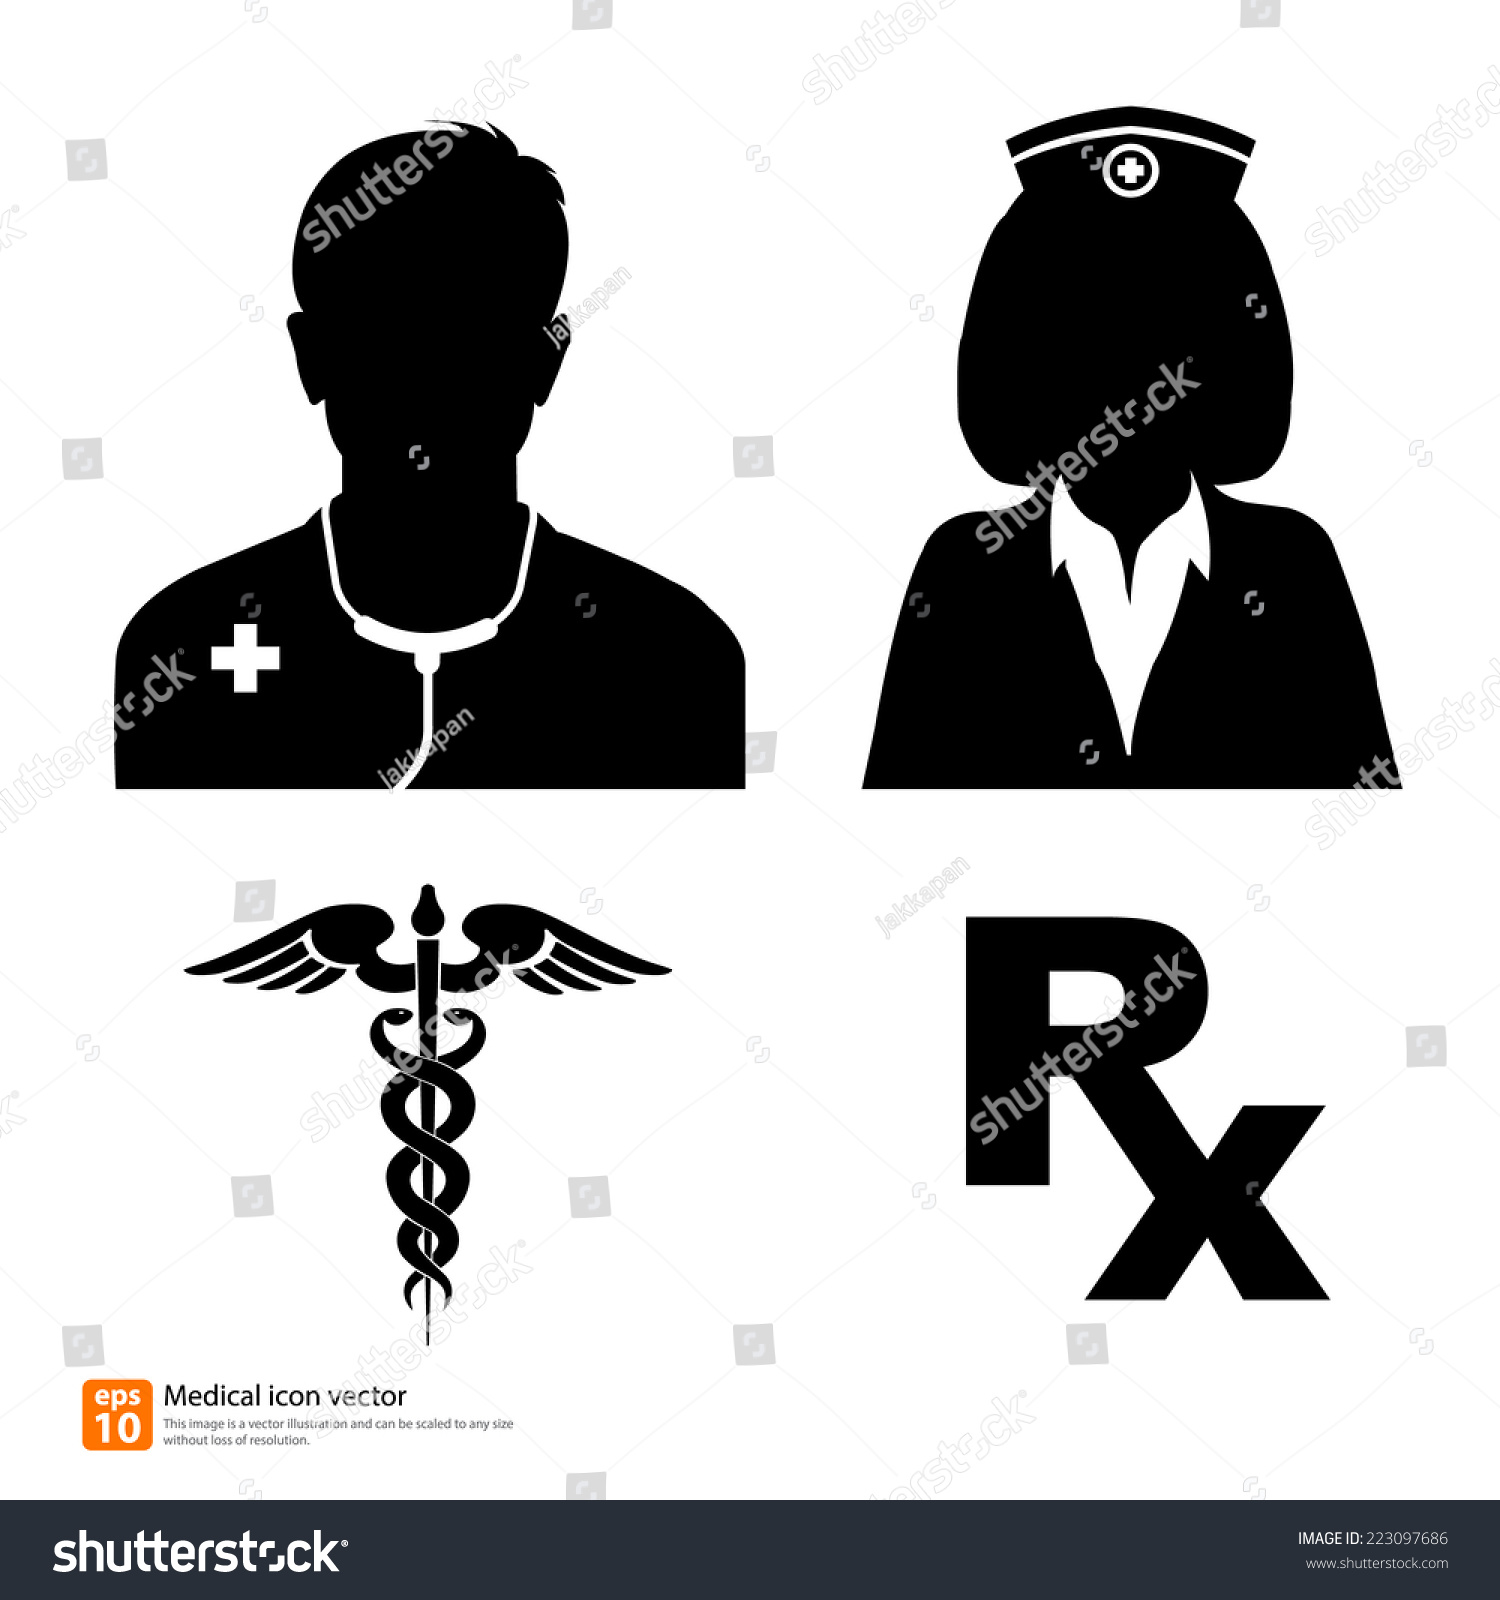 stock-vector-silhouette-vector-medical-icon-doctor-and-nurse-avatar ...